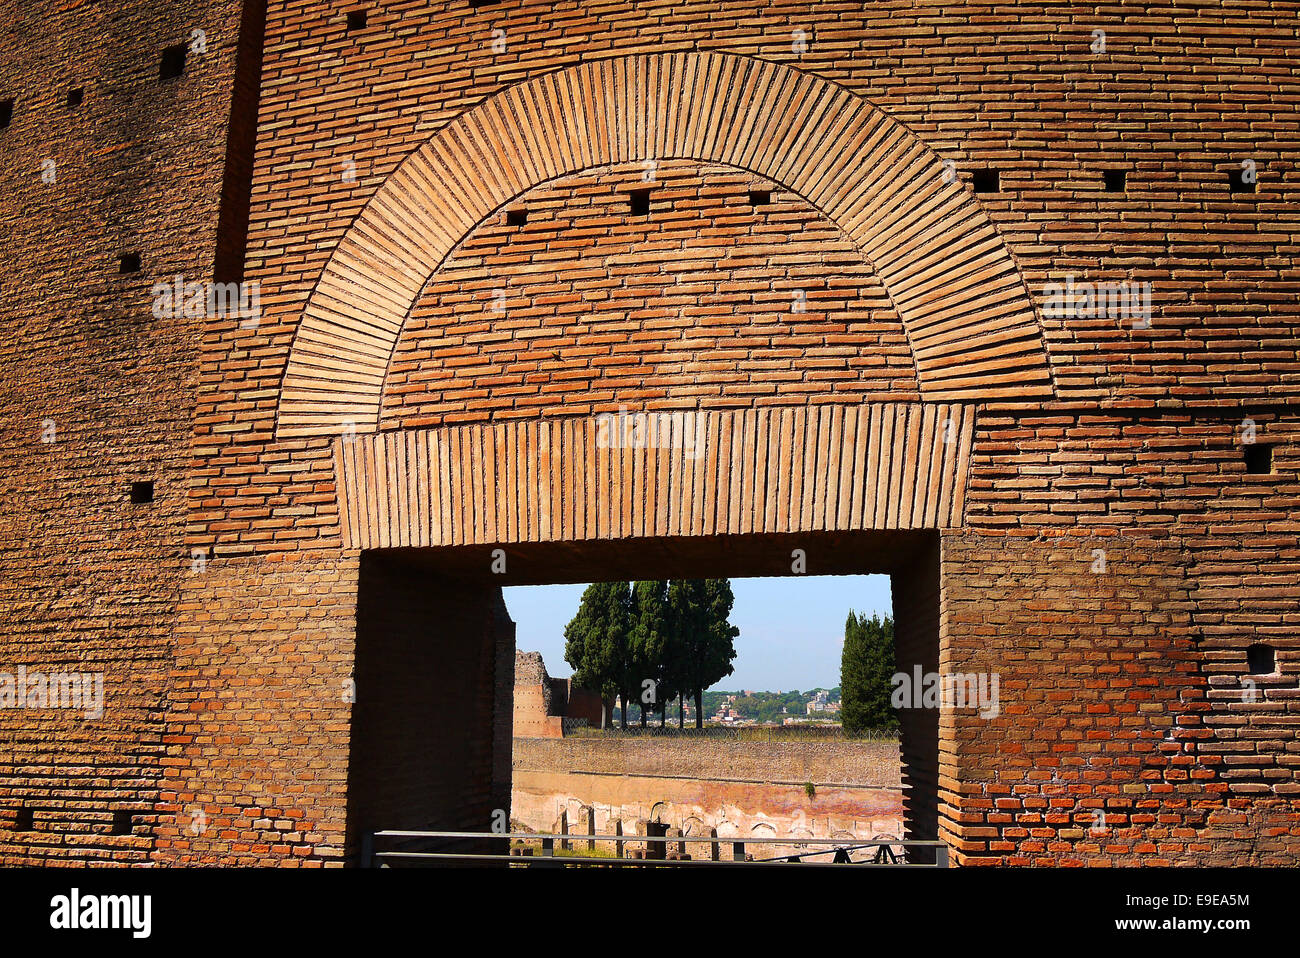 Palantine Hill, Rome, Italy. Brickwork detail at the Imperial Palace. - Stock Image